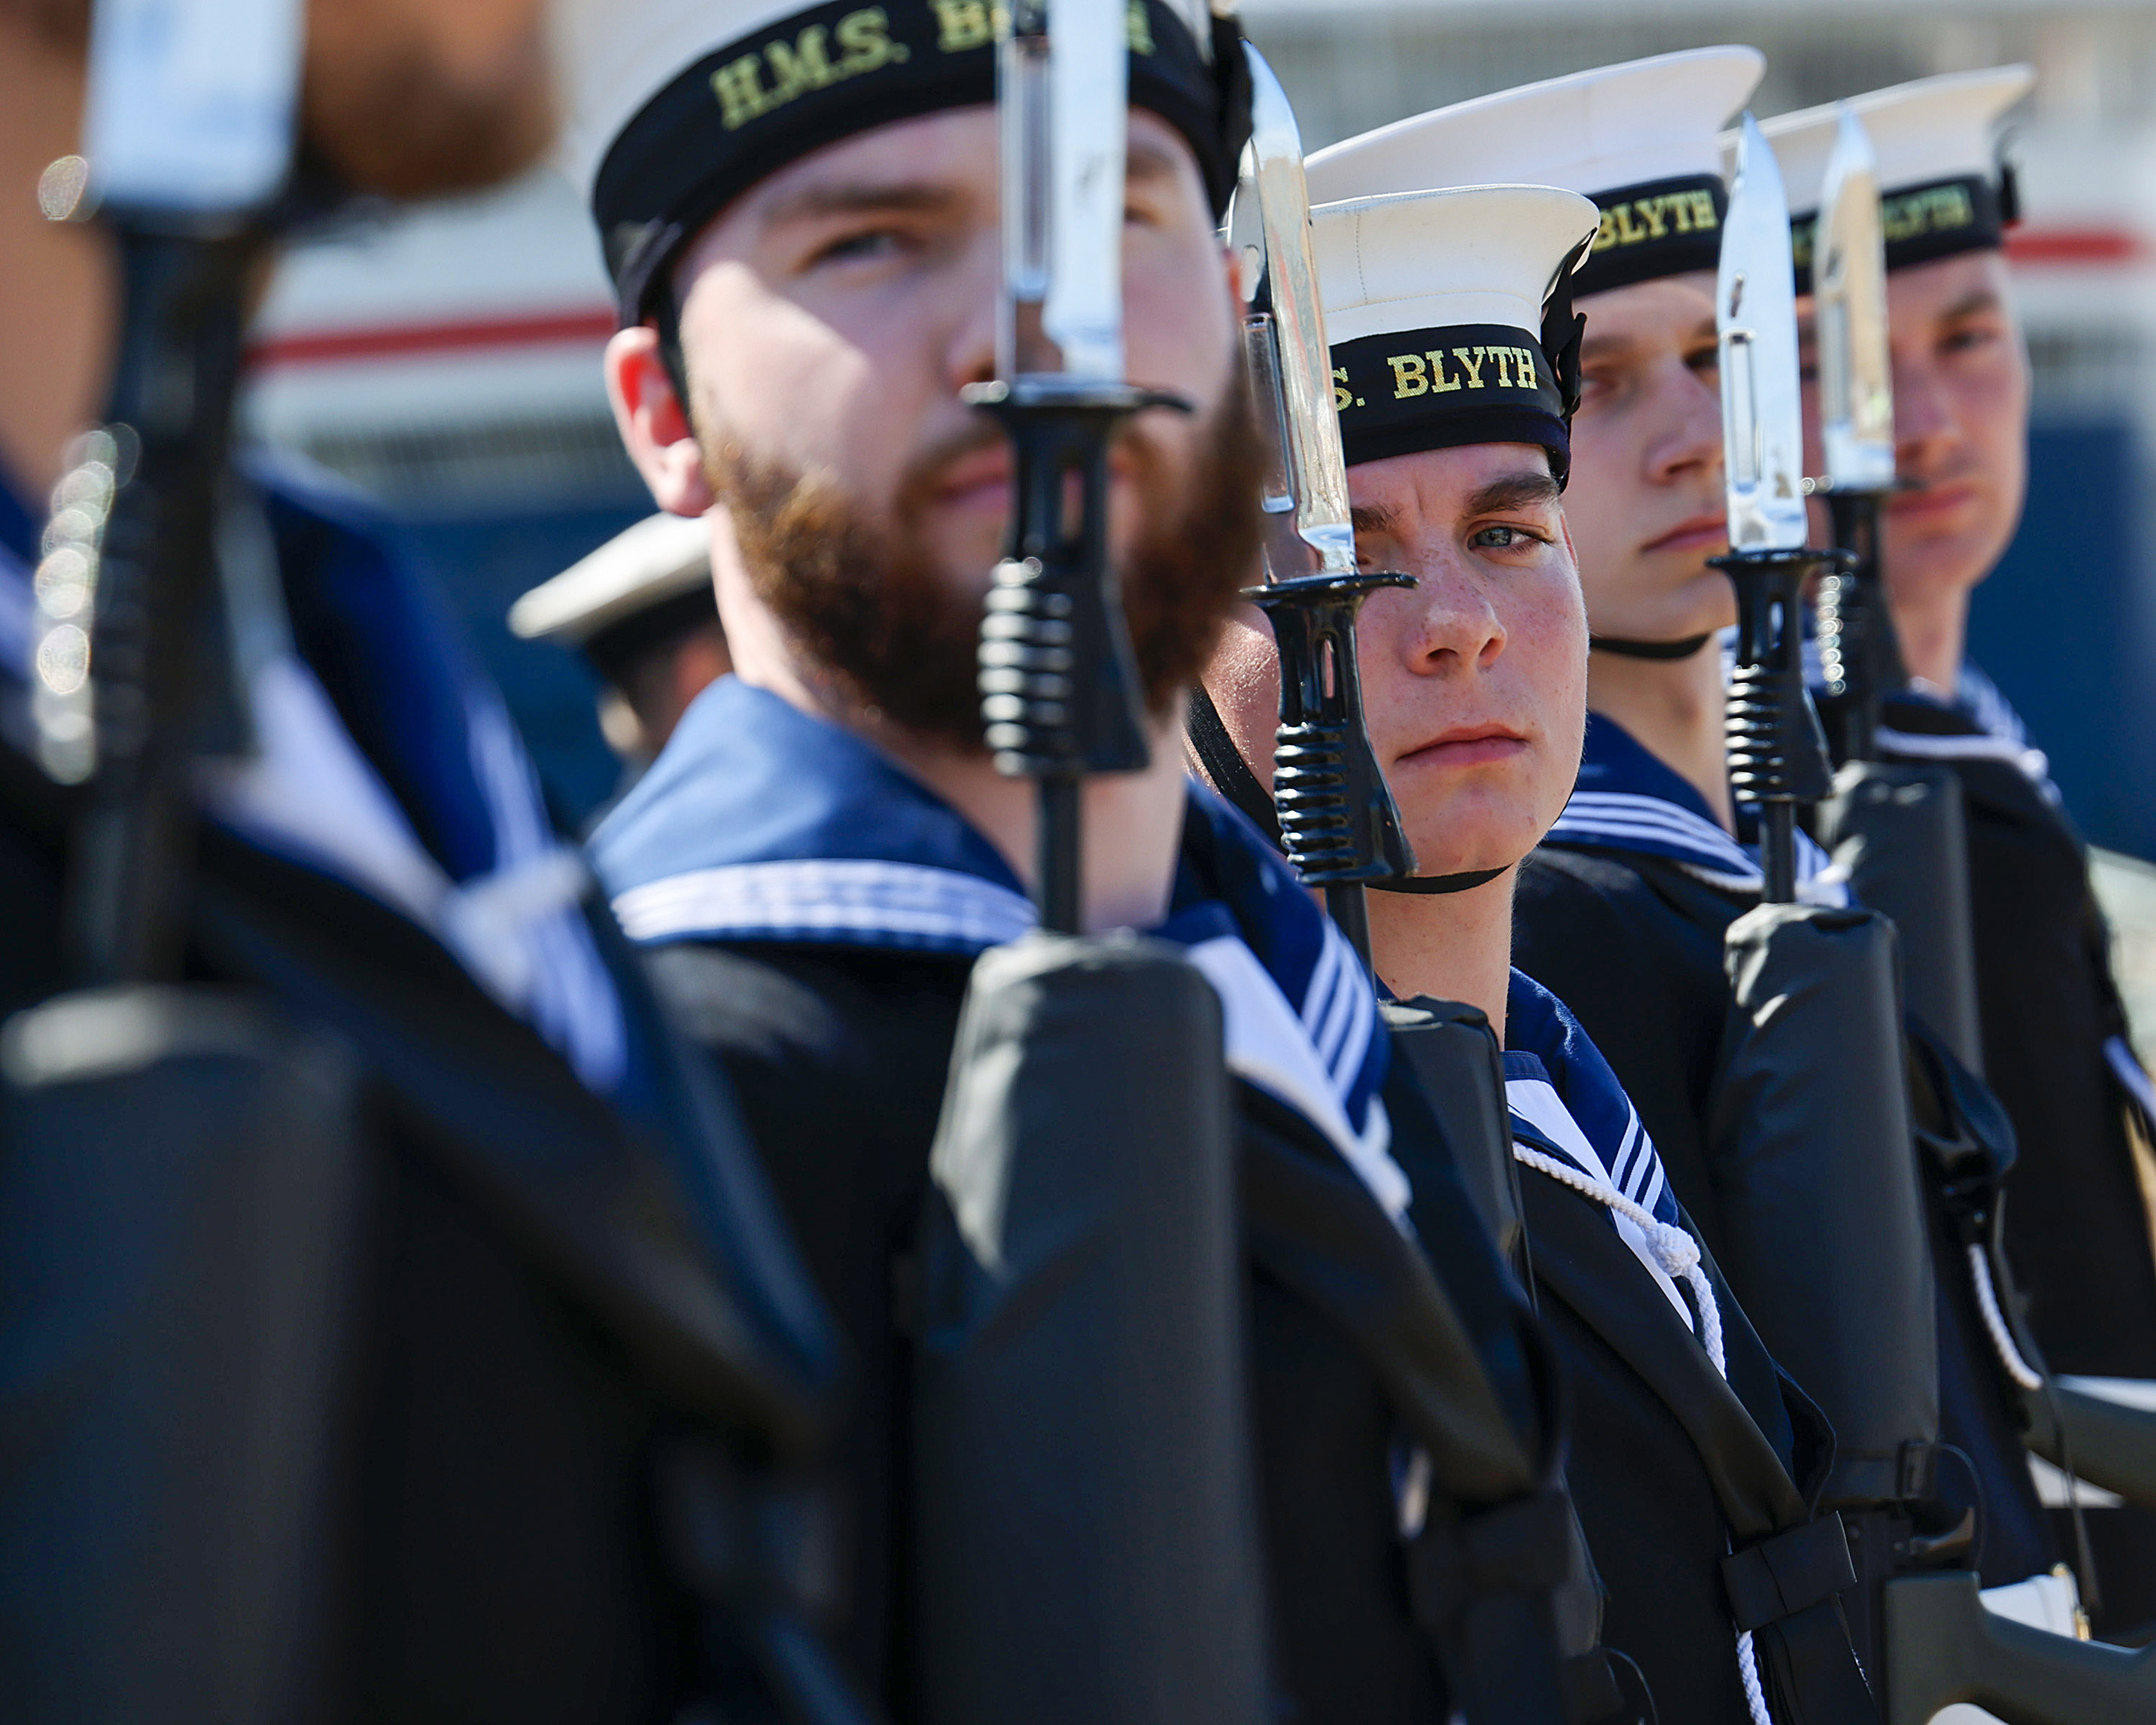 Sailors from HMS Blyth form a guard of honour